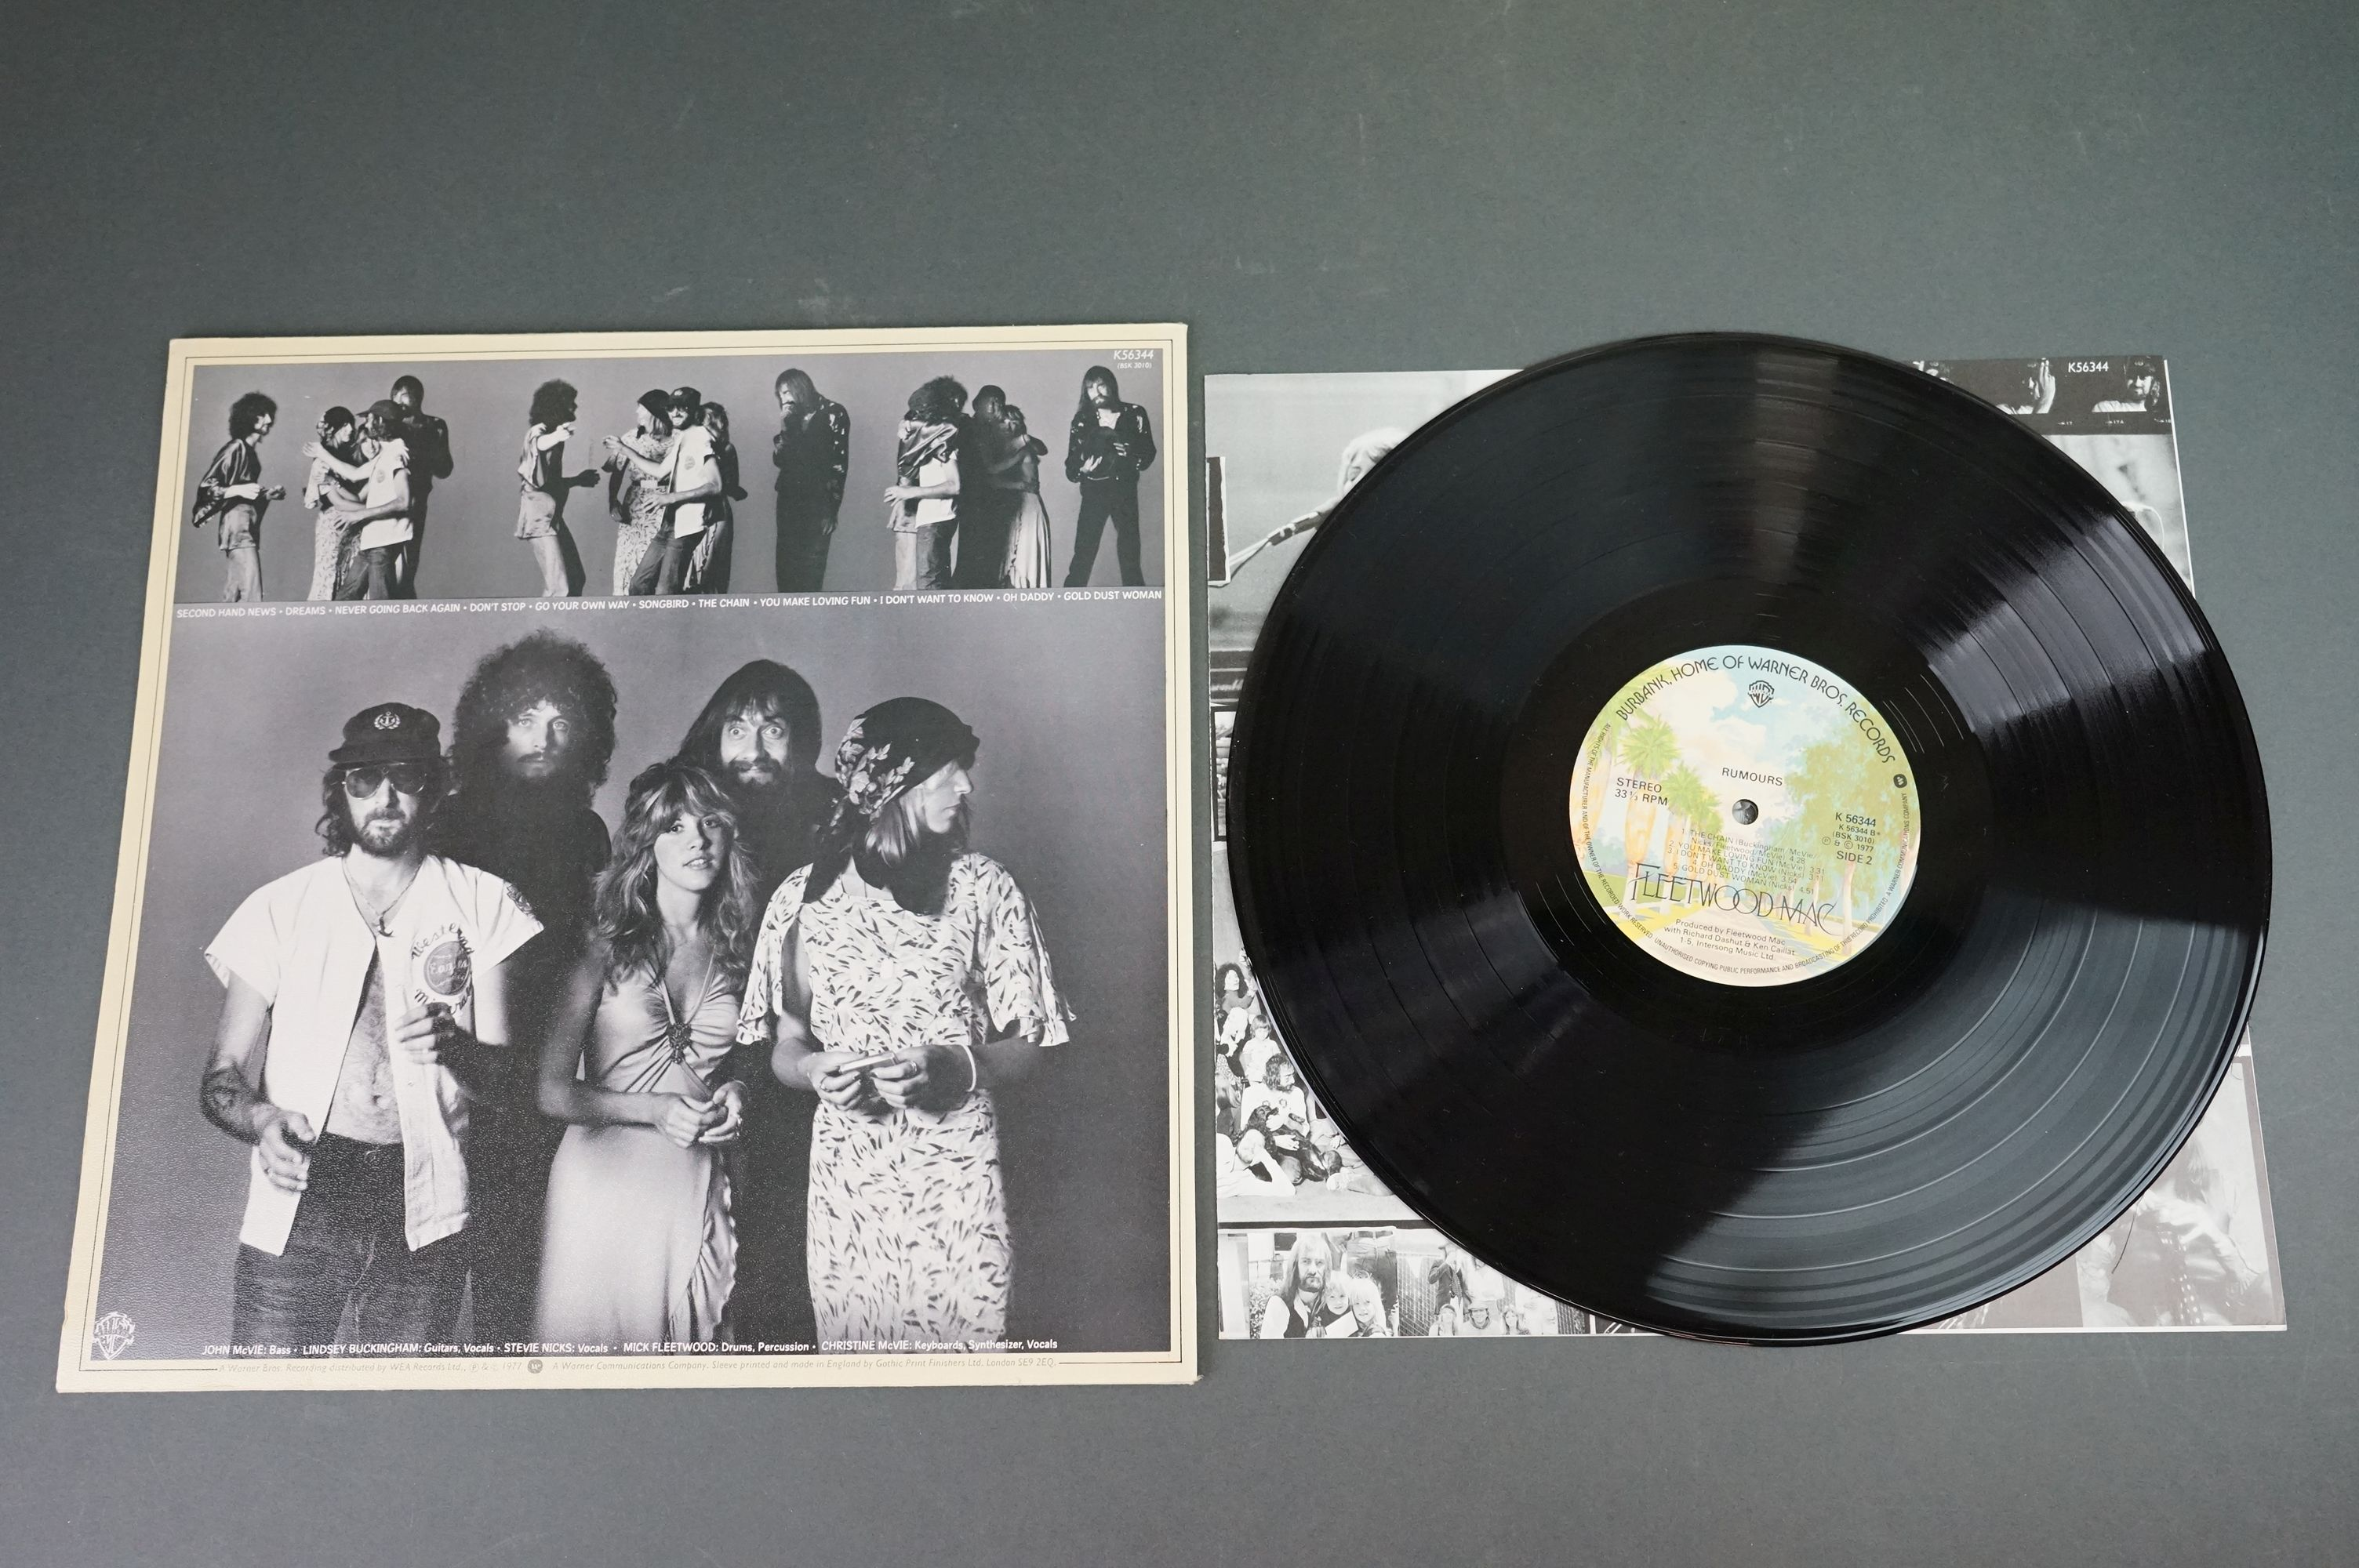 Vinyl - Two Fleetwood Mac LPs to include Tusk (K66088) and Rumours (K56344), sleeves and vinyl vg+ - Image 3 of 7